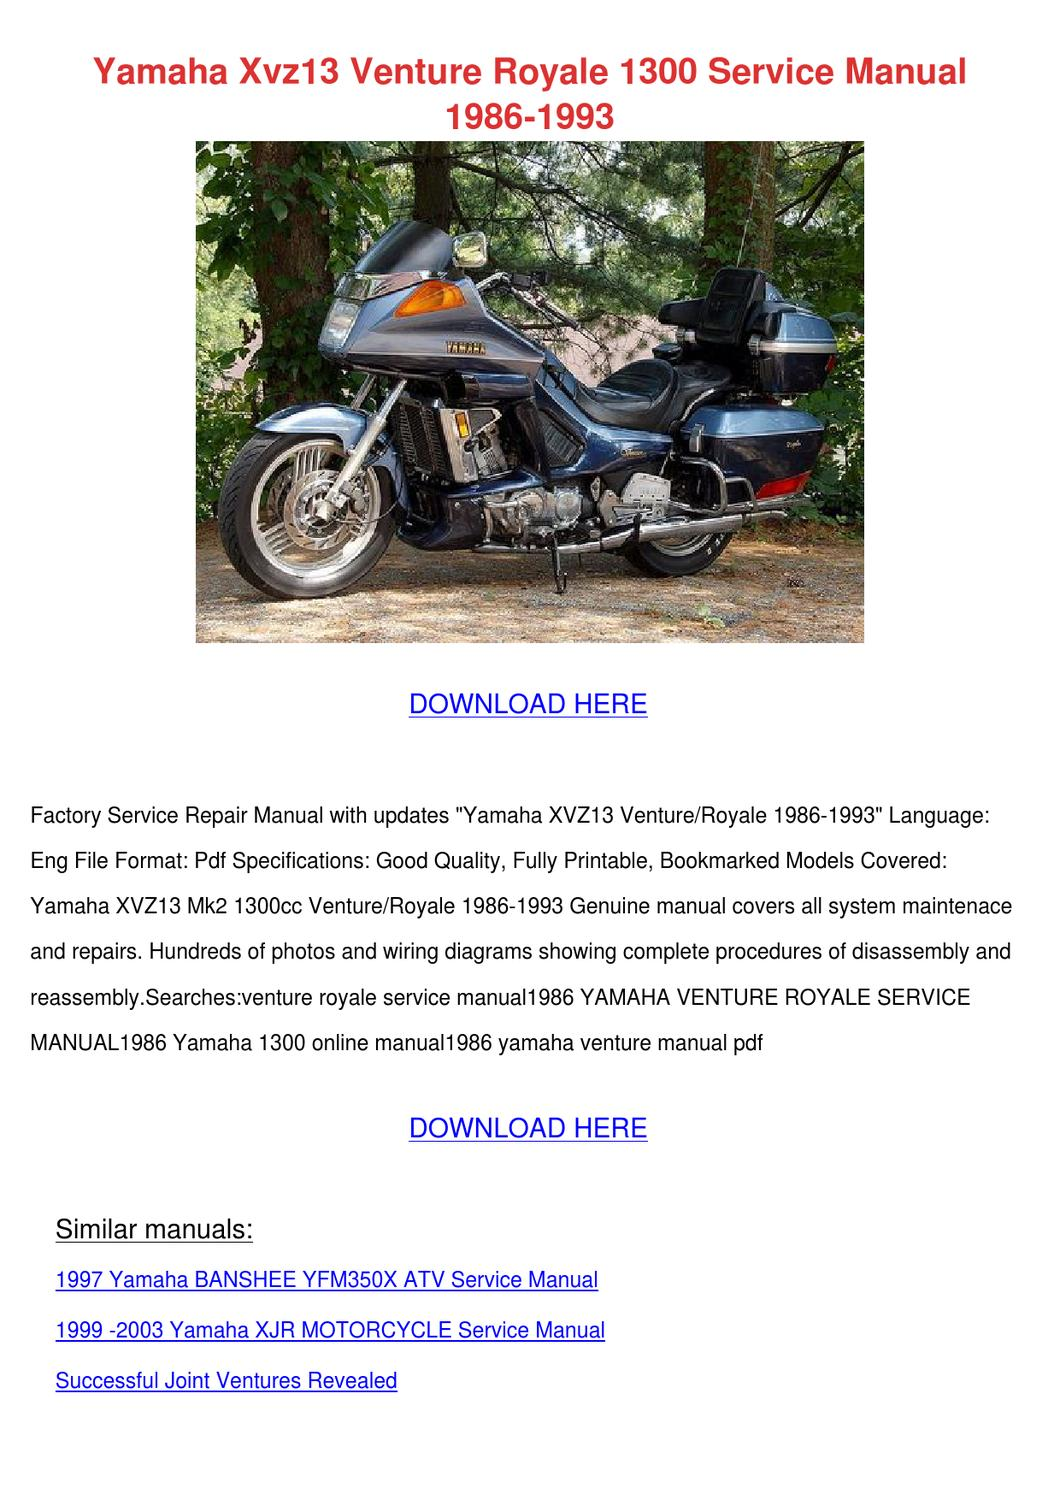 Yamaha Venture Mp Service Manual Good Owner Guide Website Wiring Diagram Viking 2003 Fjr1300 Pdf Download Autos Post Multi Purpose Owners